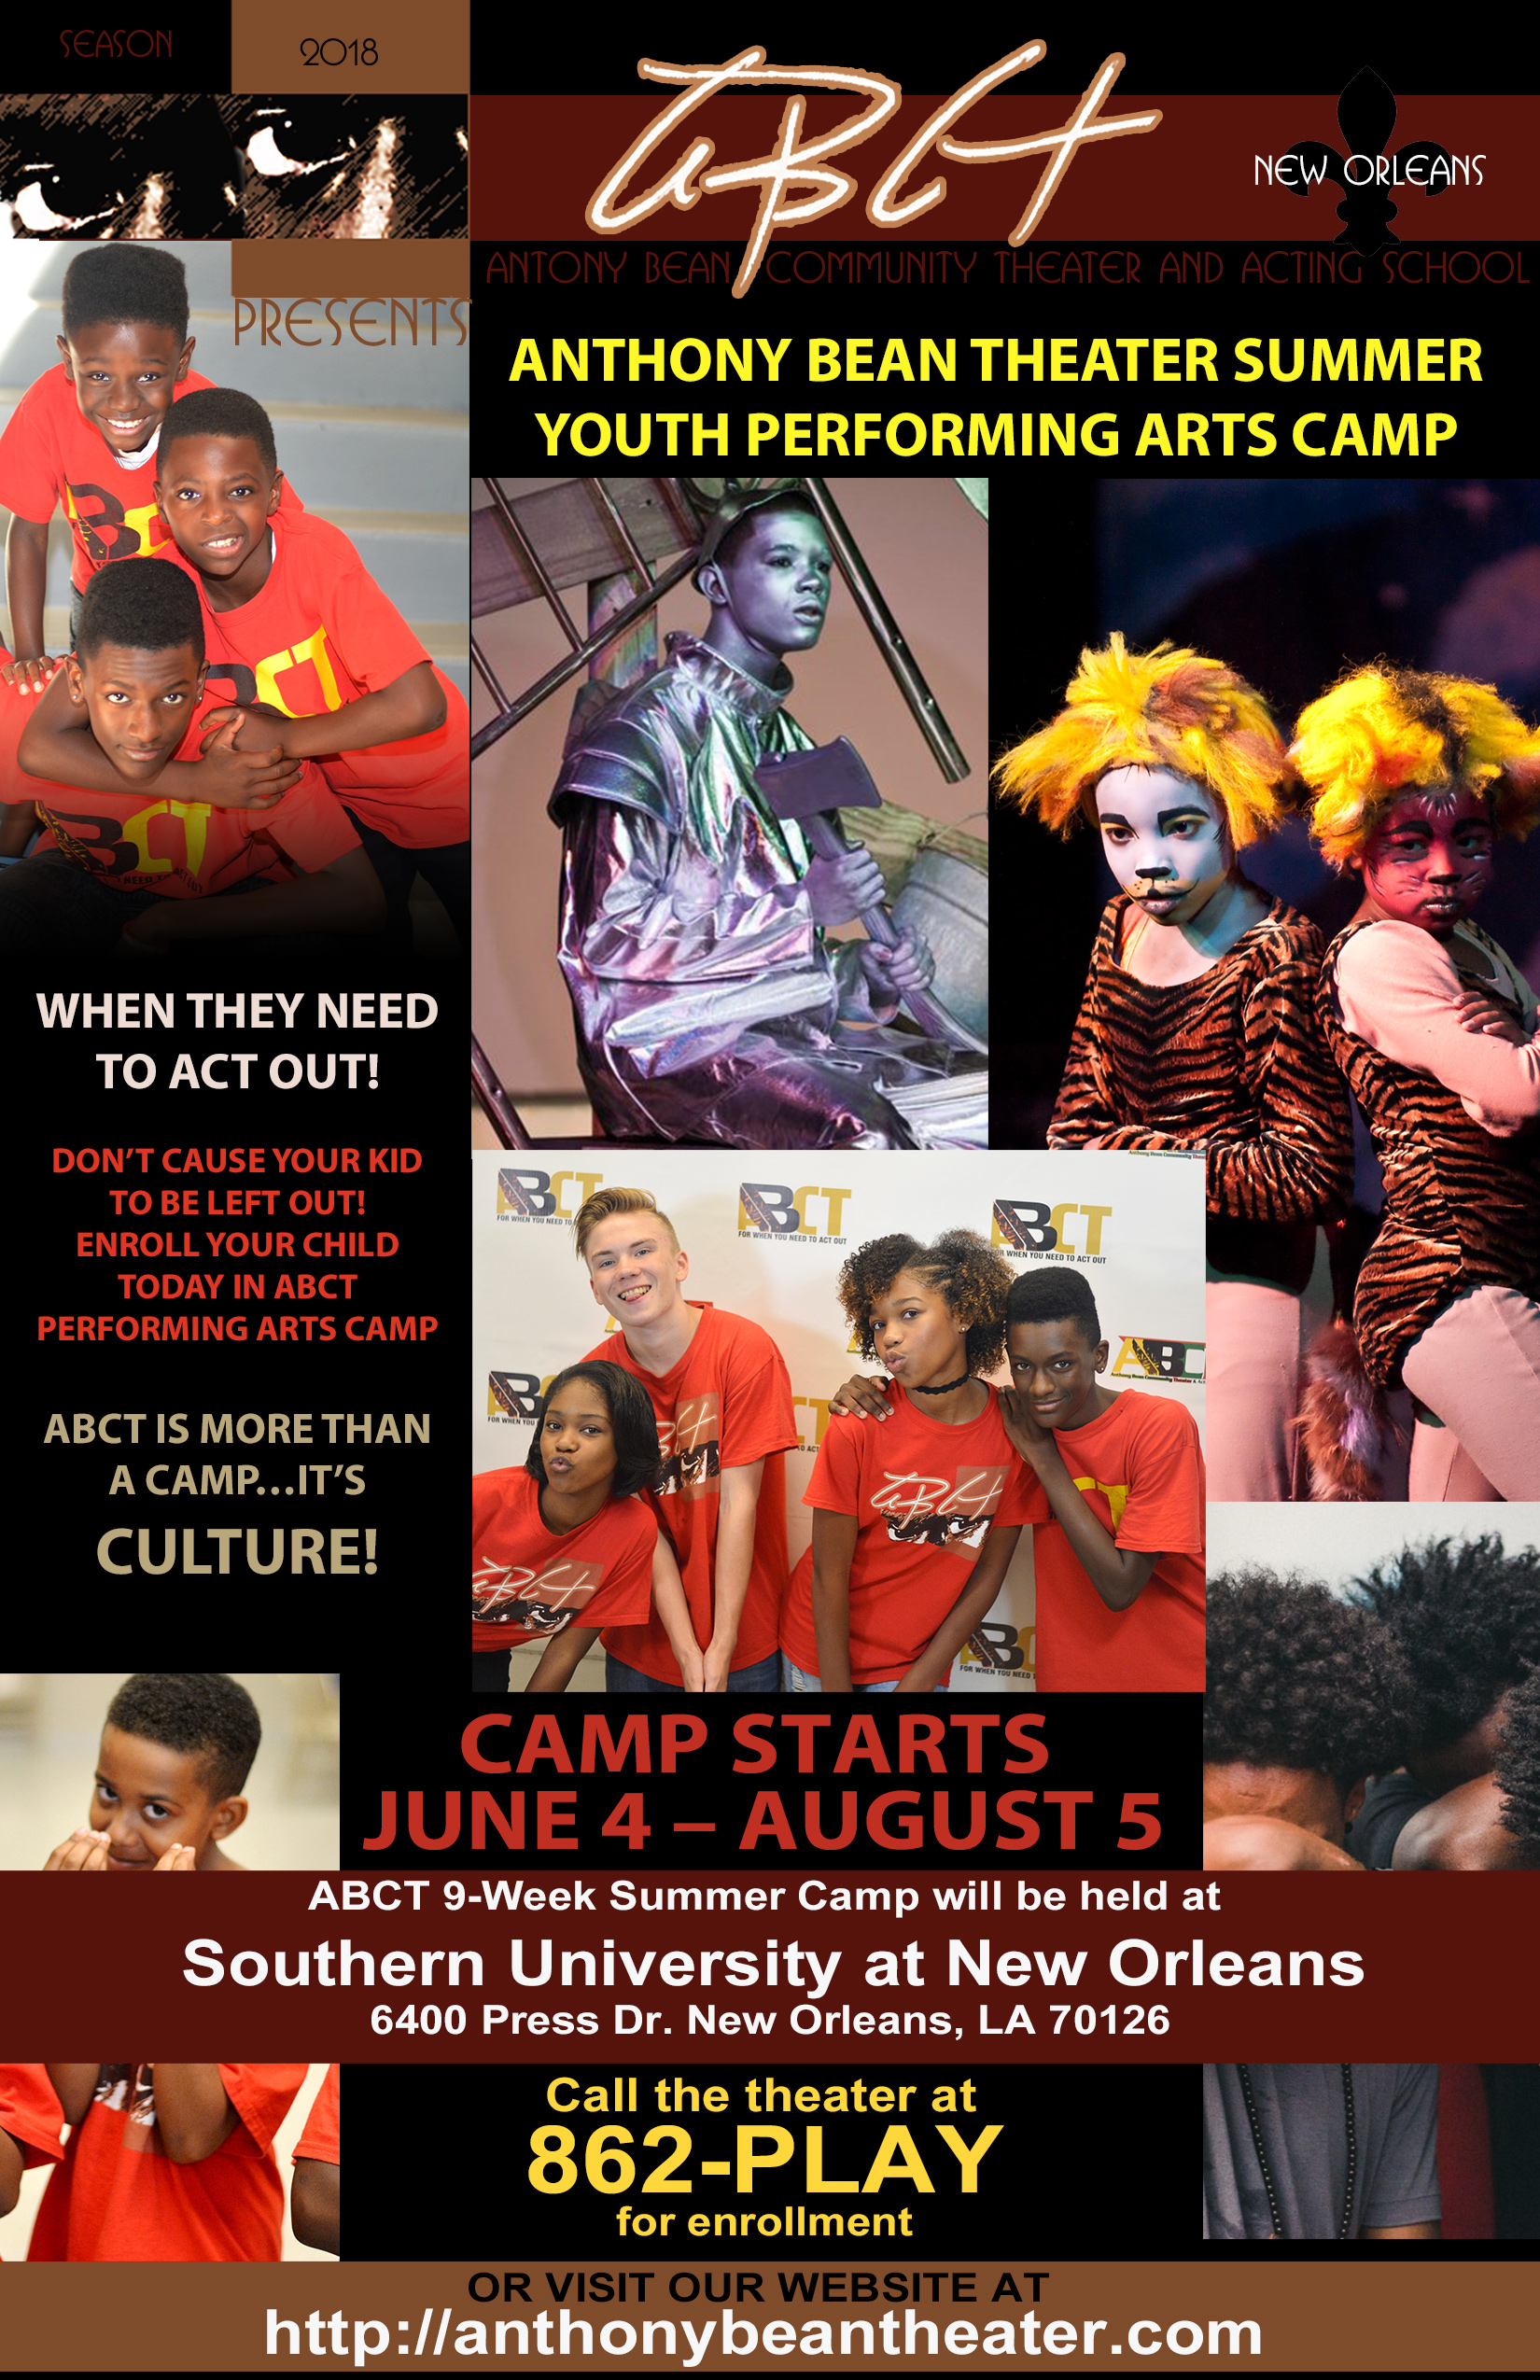 The Summer Camp Flyer